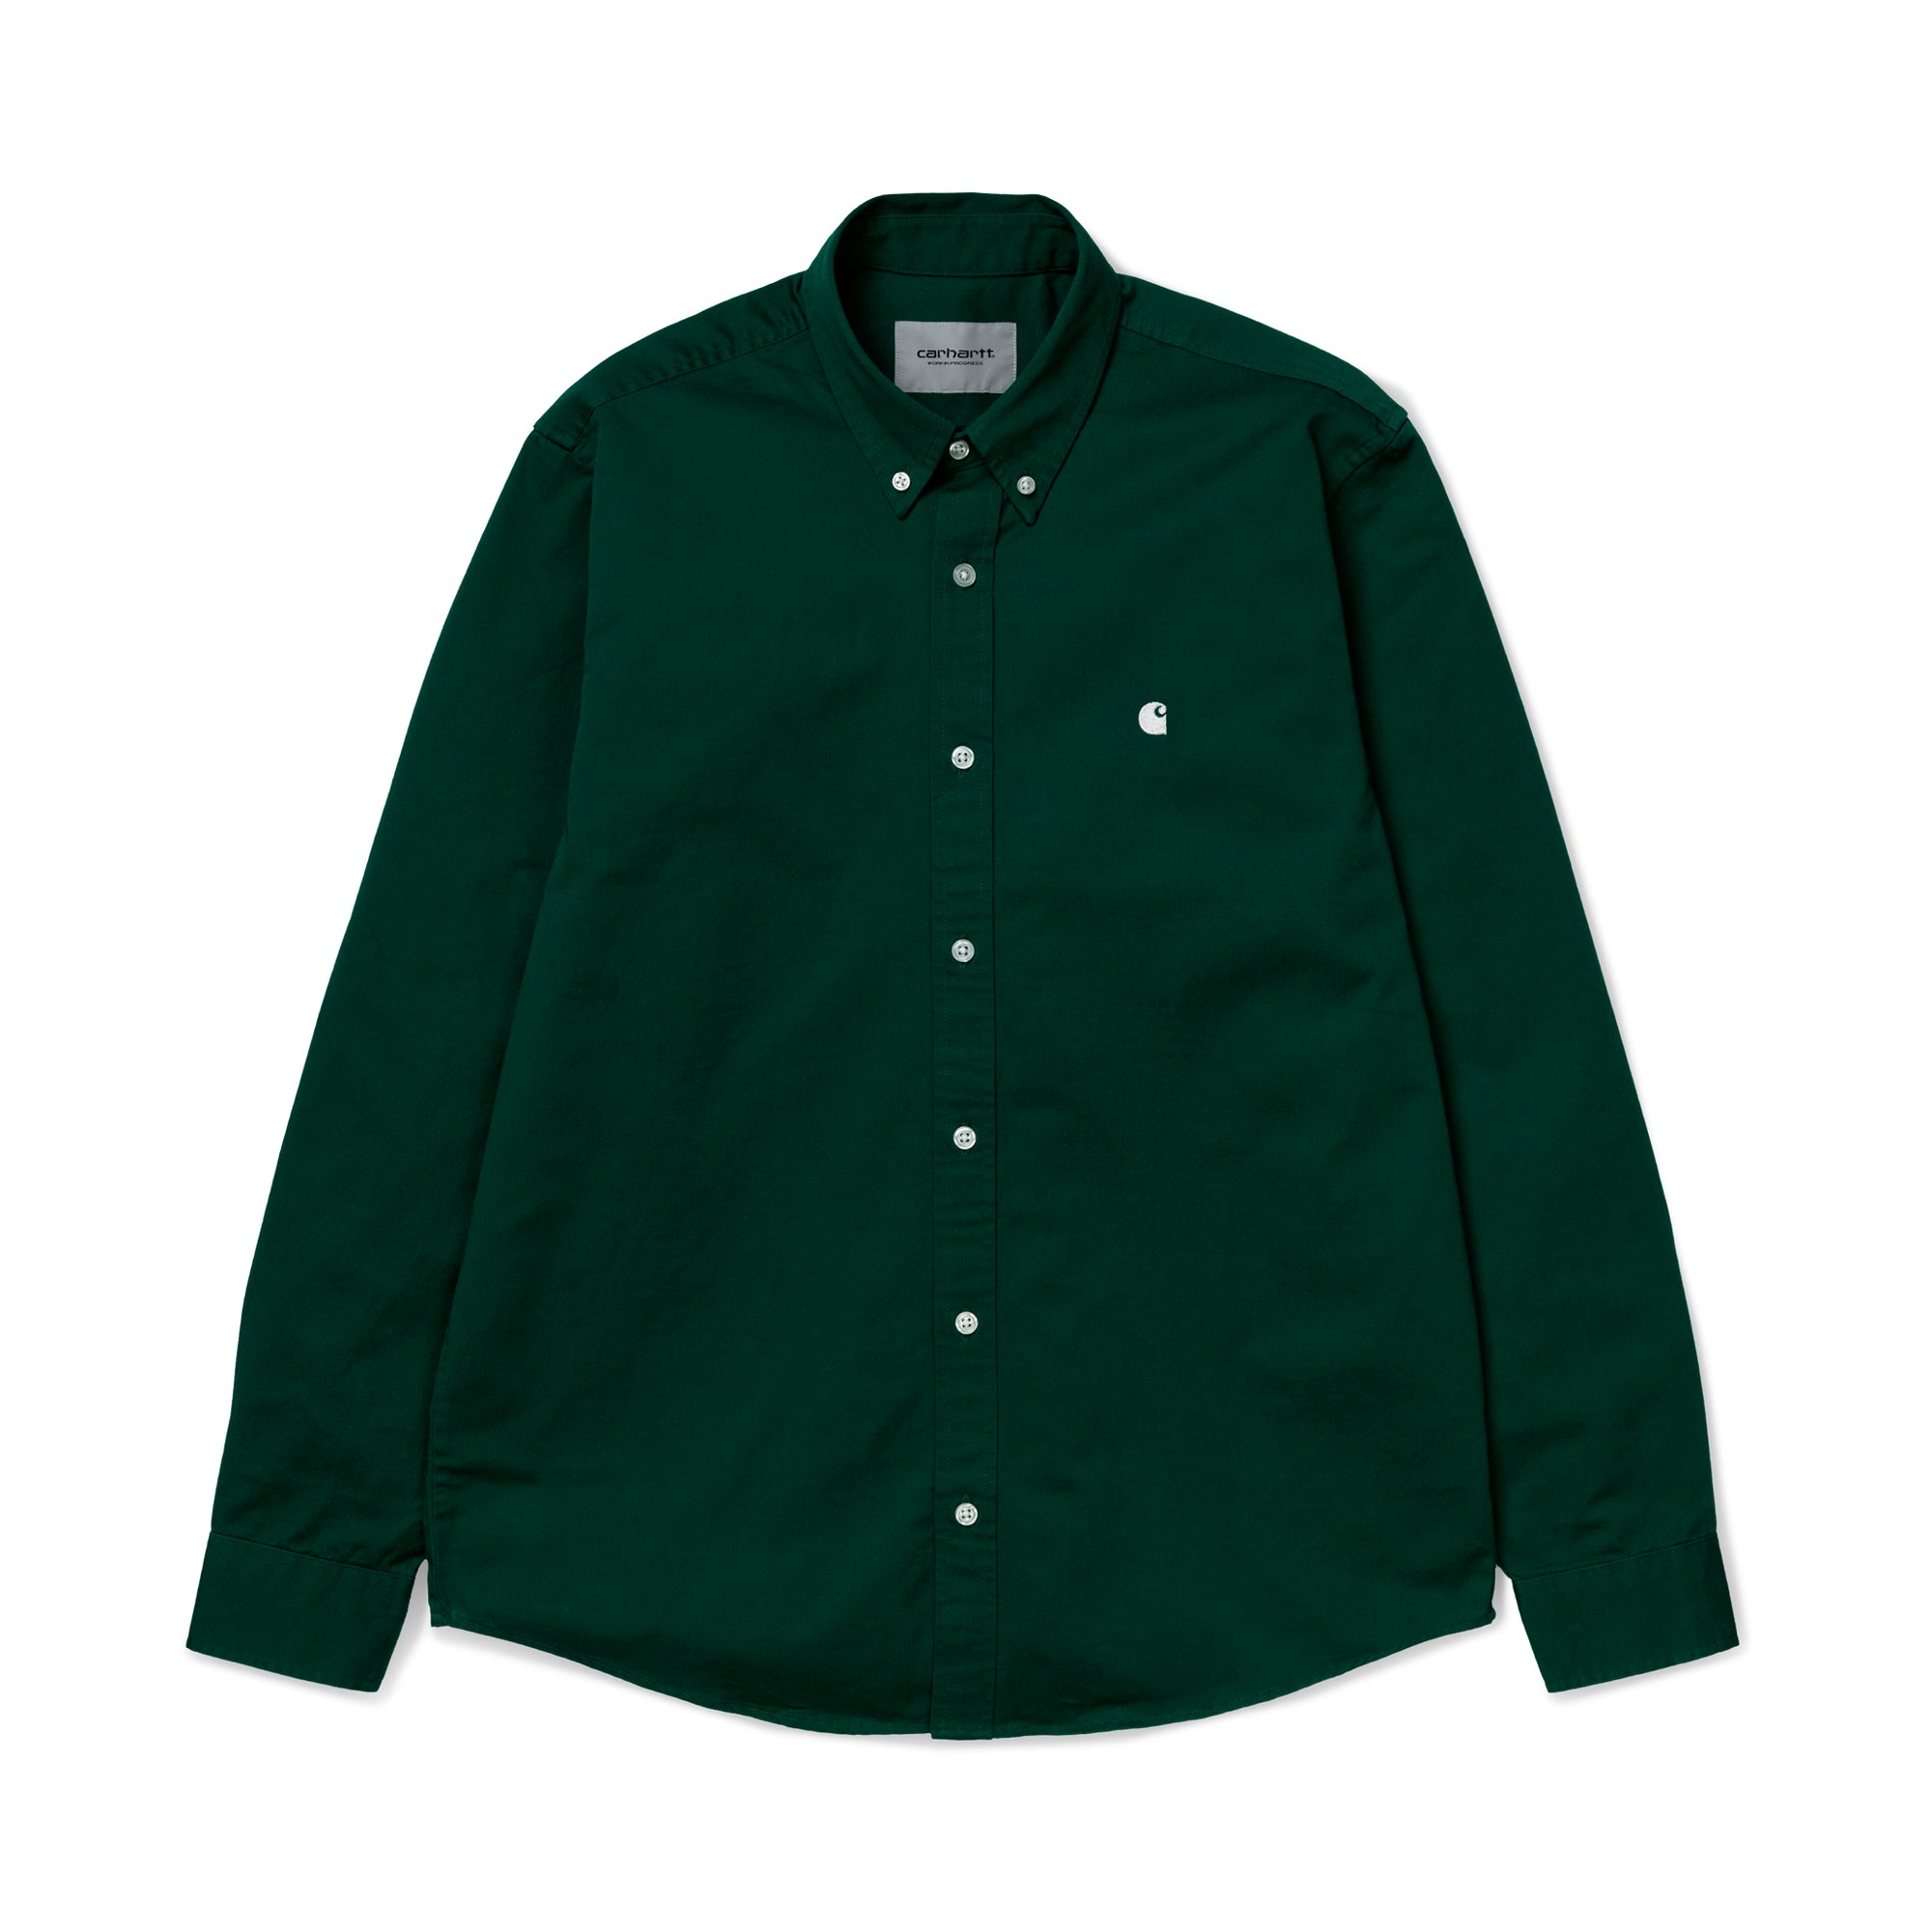 Carhartt WIP Madison Shirt: Treehouse / Wax - The Union Project